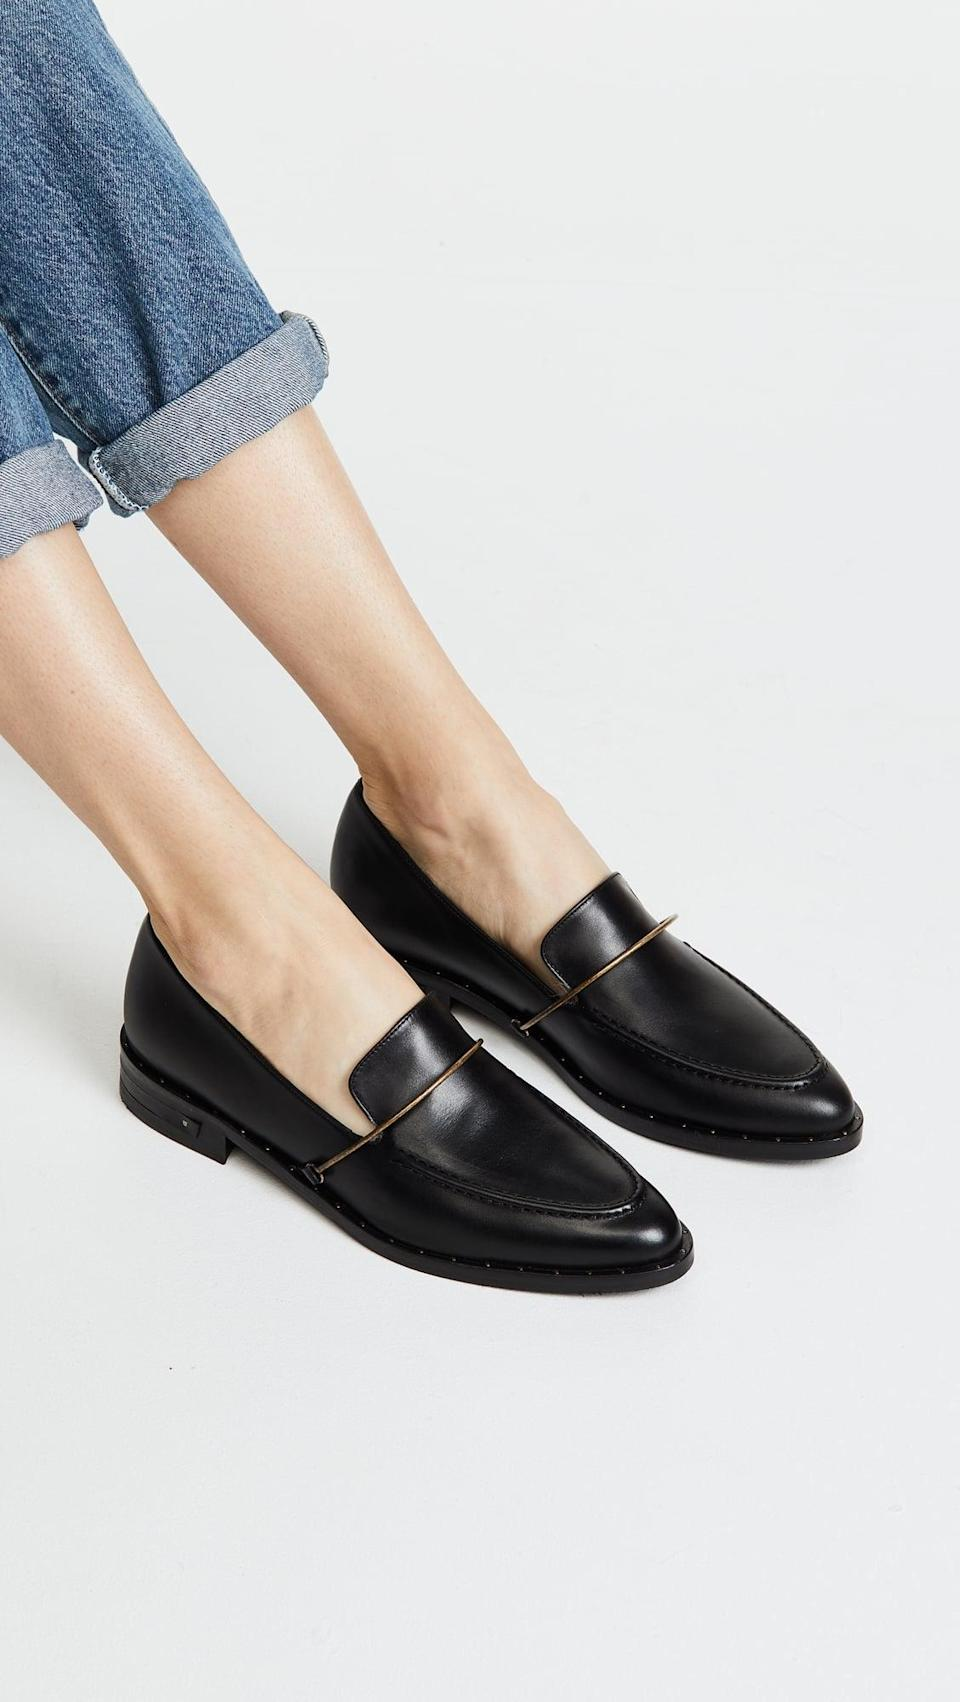 <p>These <span>Freda Salvador The Light Loafers</span> ($395) look effortlessly chic, and we can't get enough of the silhouette. Wear them with rolled up jeans to make them stand out.</p>